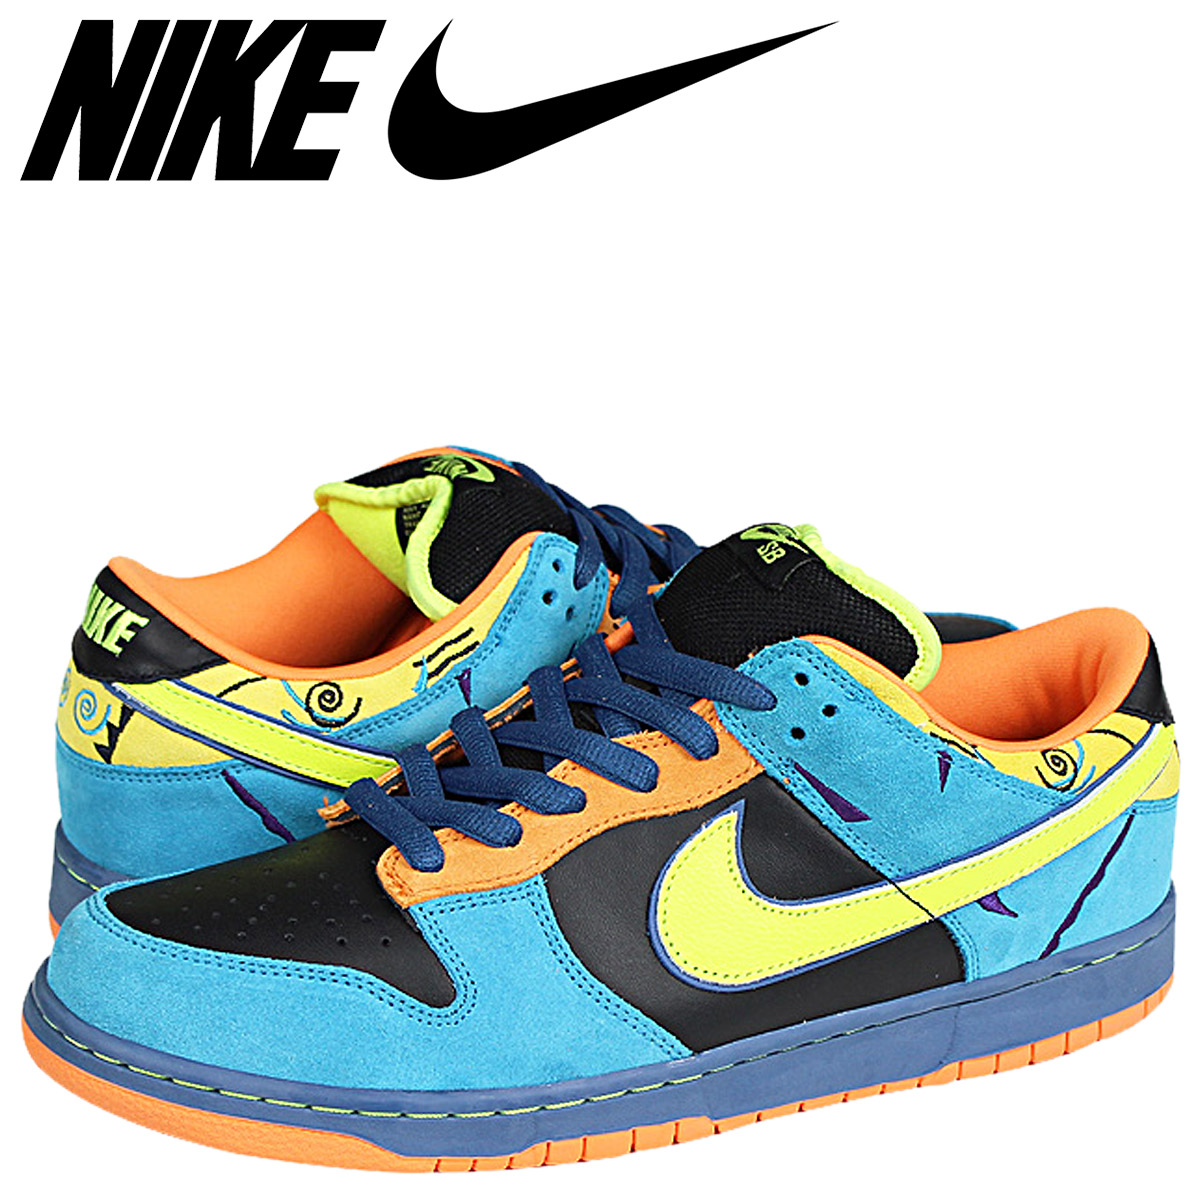 Whats up Sports  NIKE Nike dunk SB sneakers DUNK LOW PRO SB SKATE OR ... 276187993788